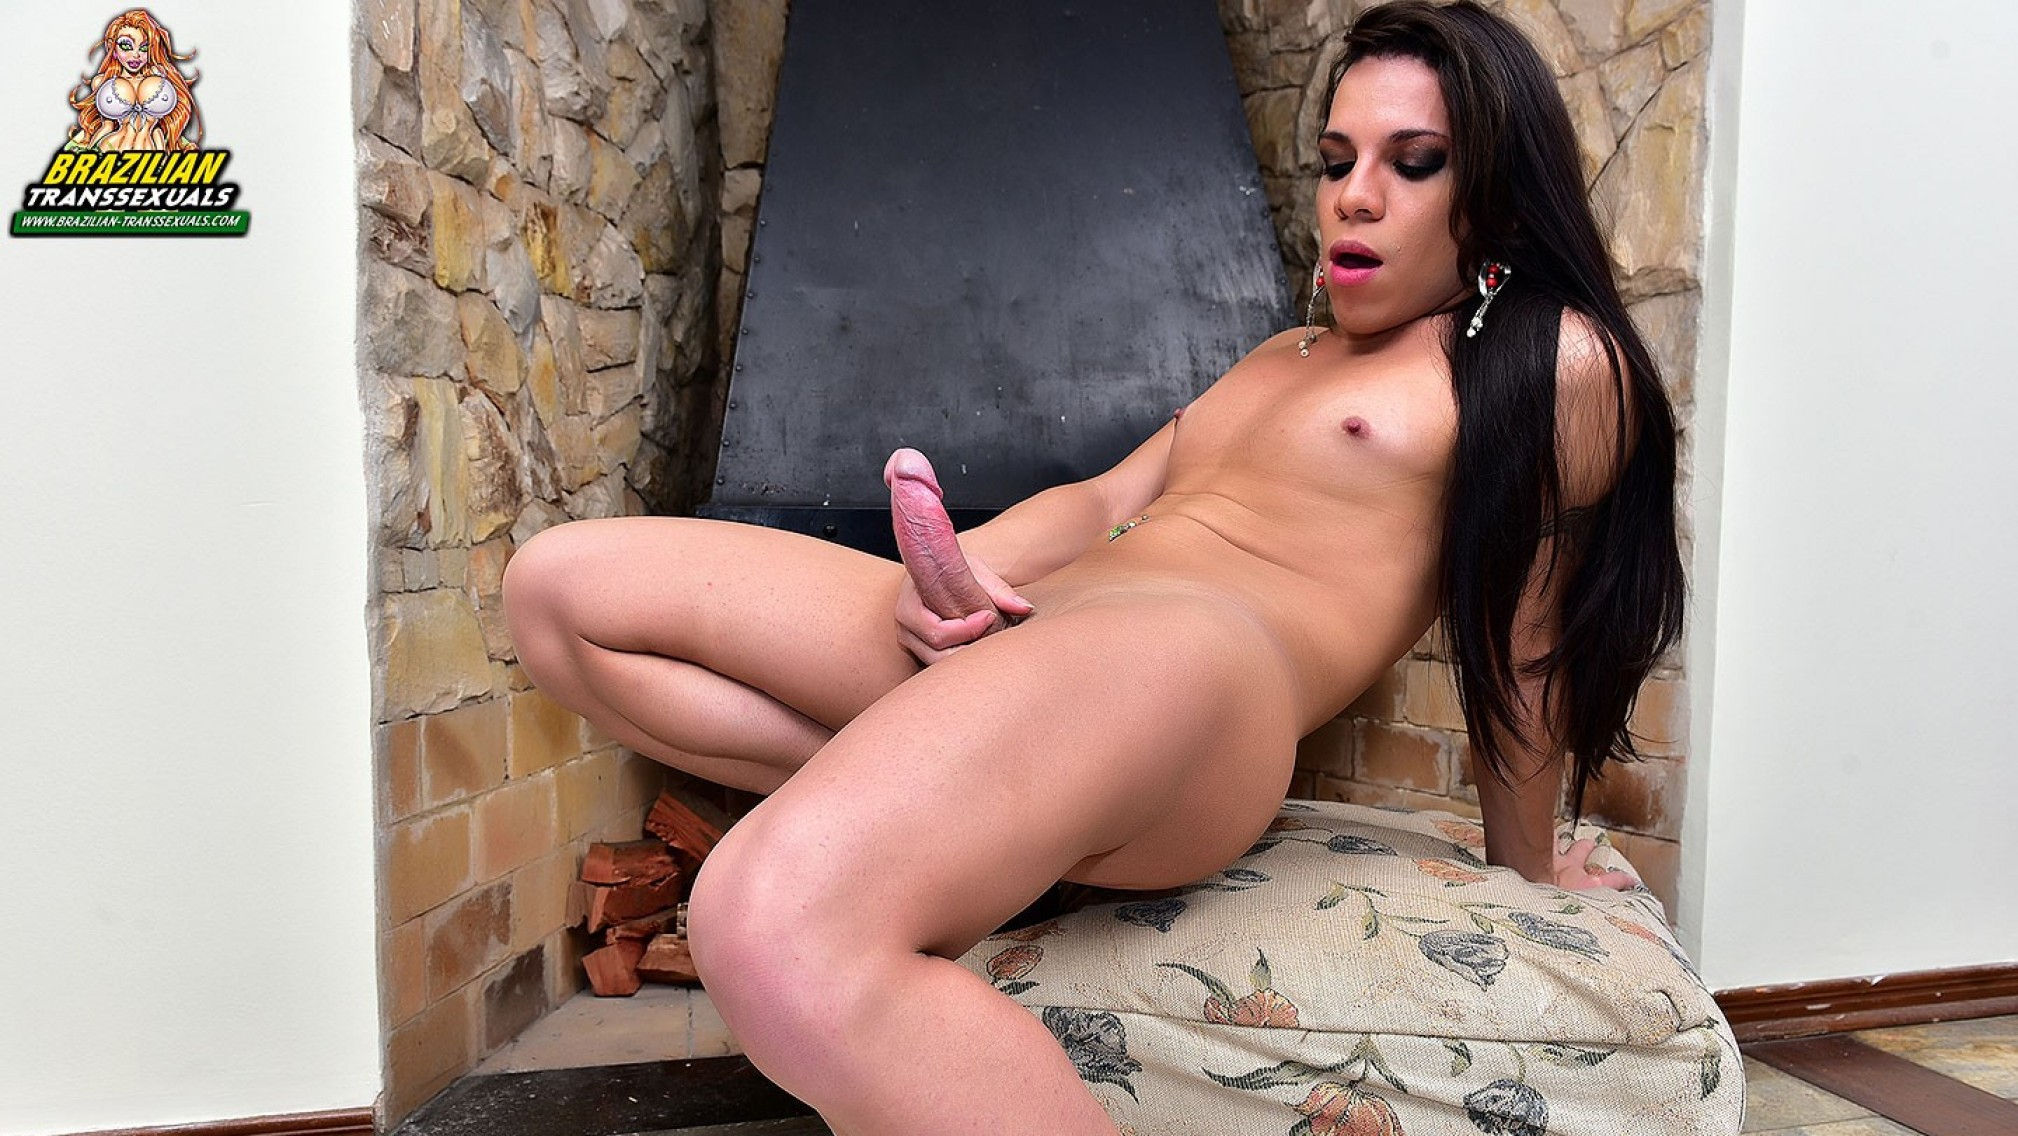 Ariane de Brito in Ariane de Brito Jacks Off - Brazilian-Transsexuals amature outdoor sex videos